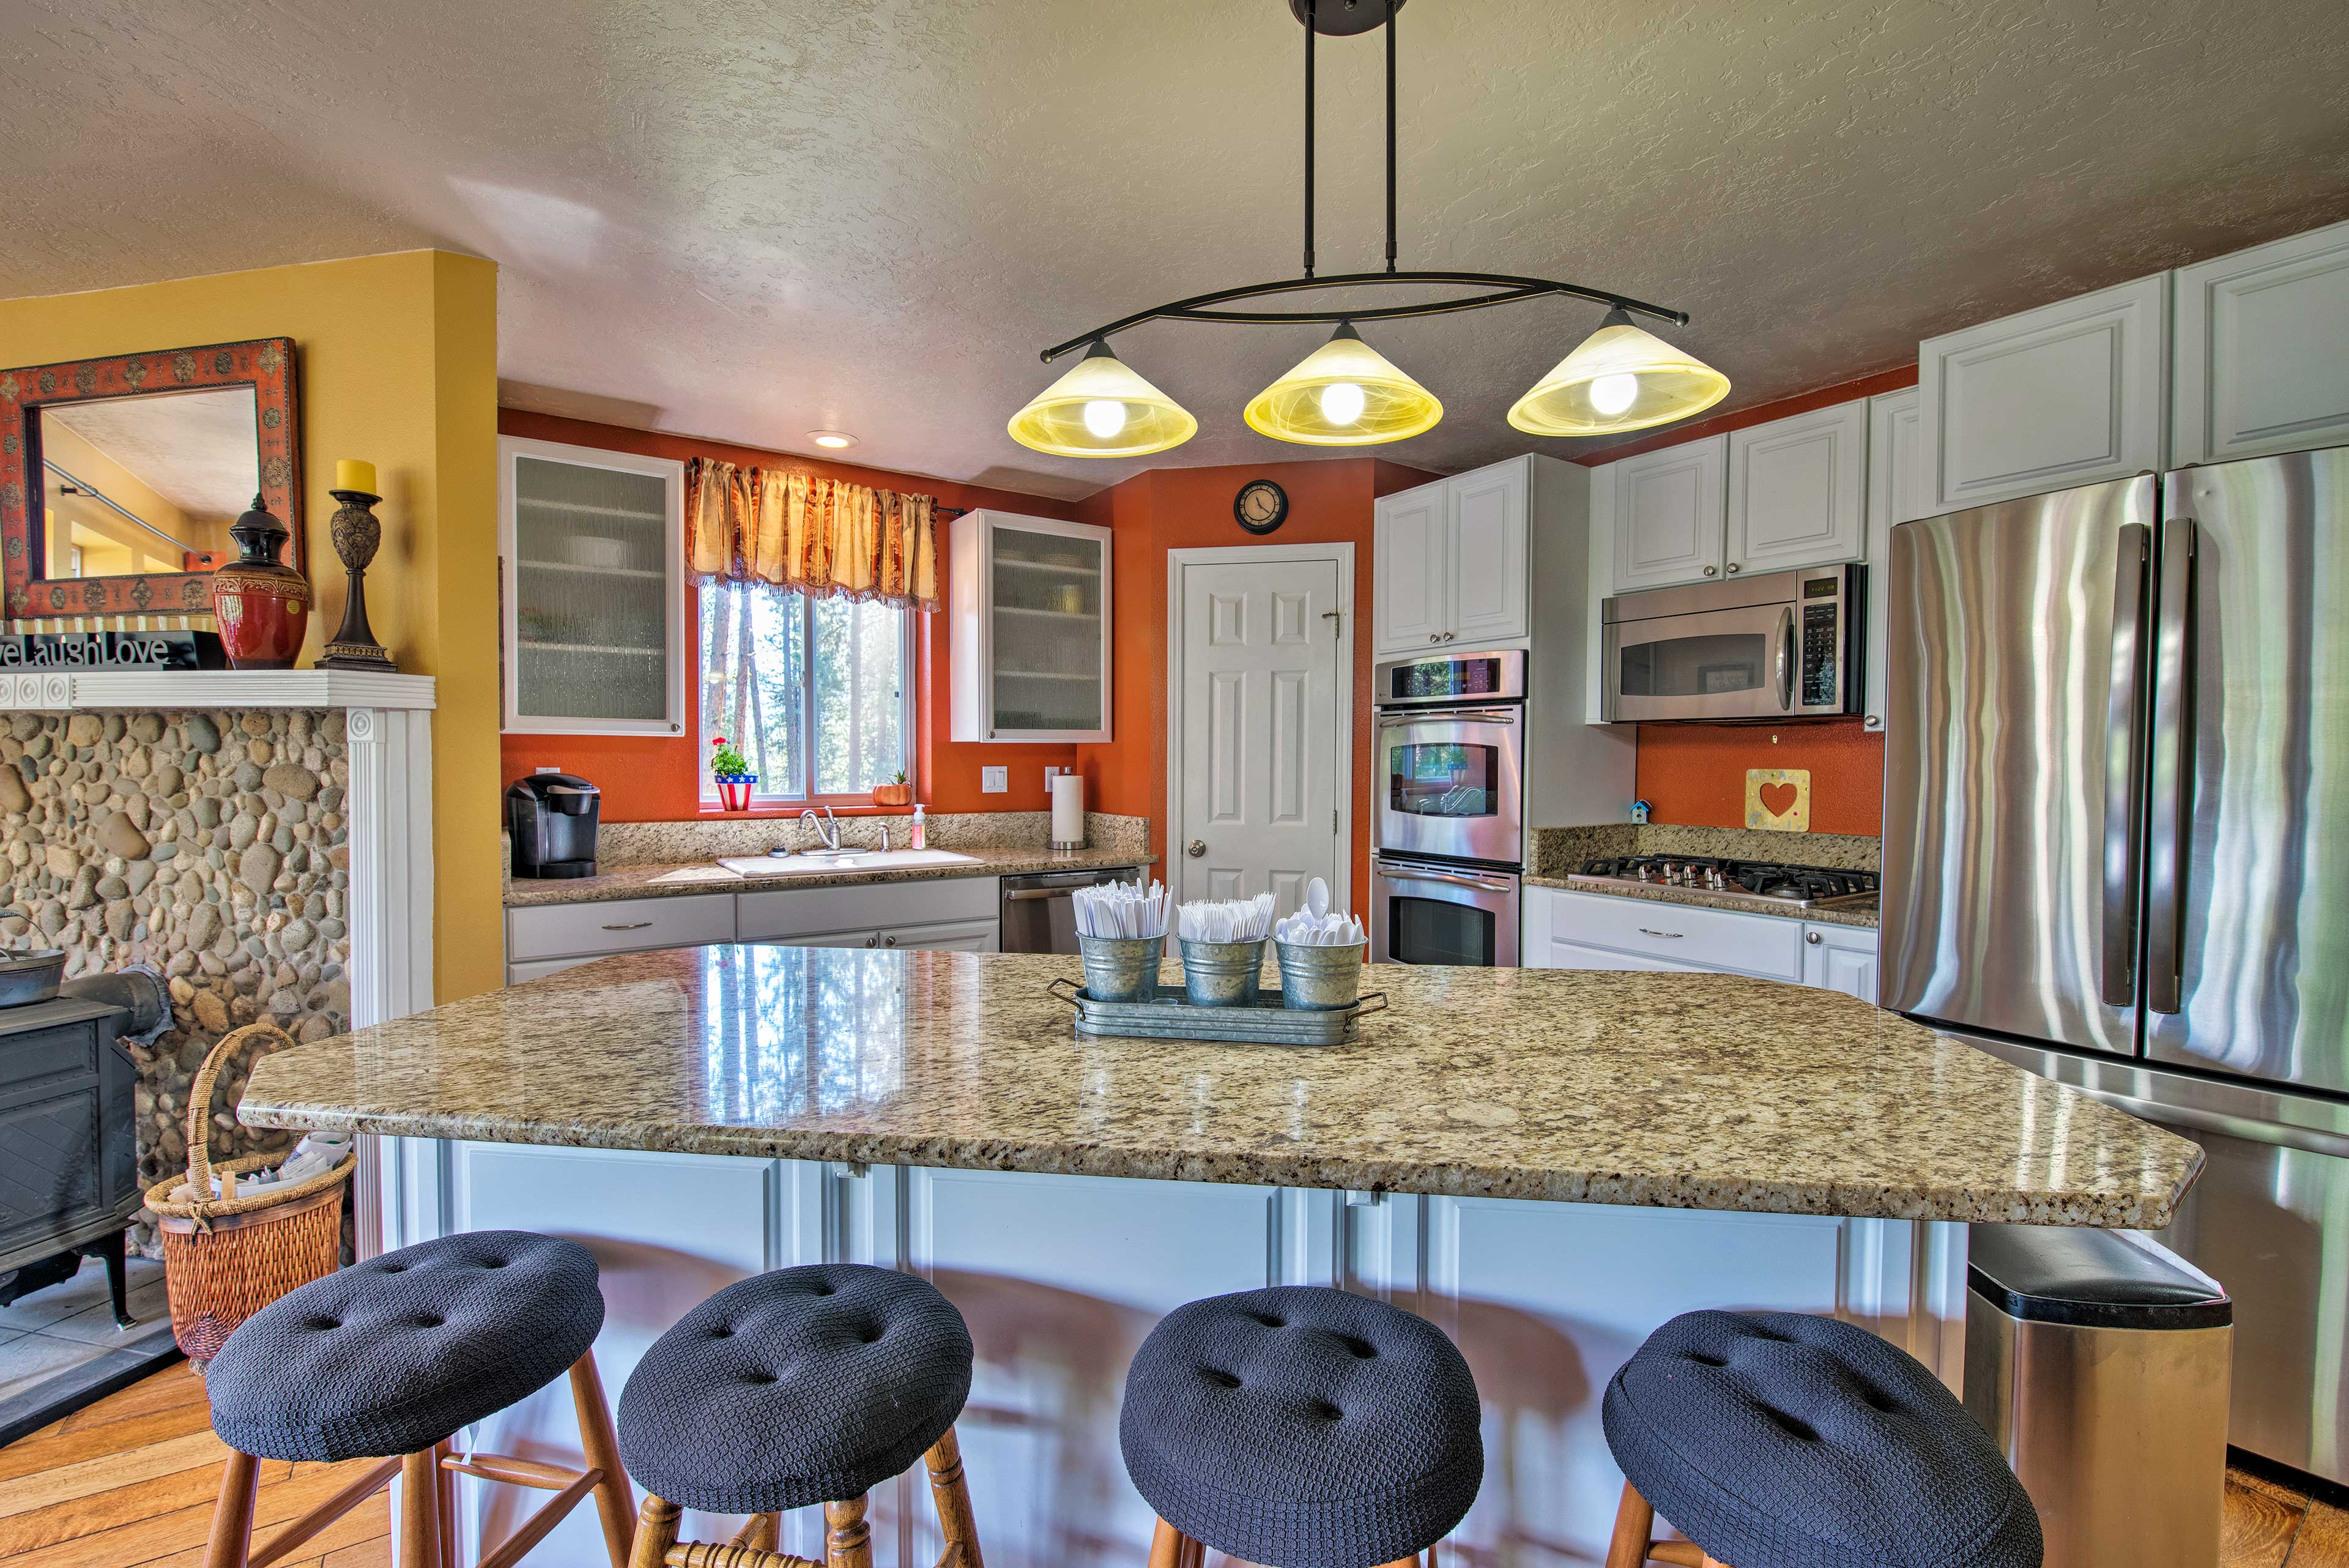 The property features an updated kitchen and high-end amenities.